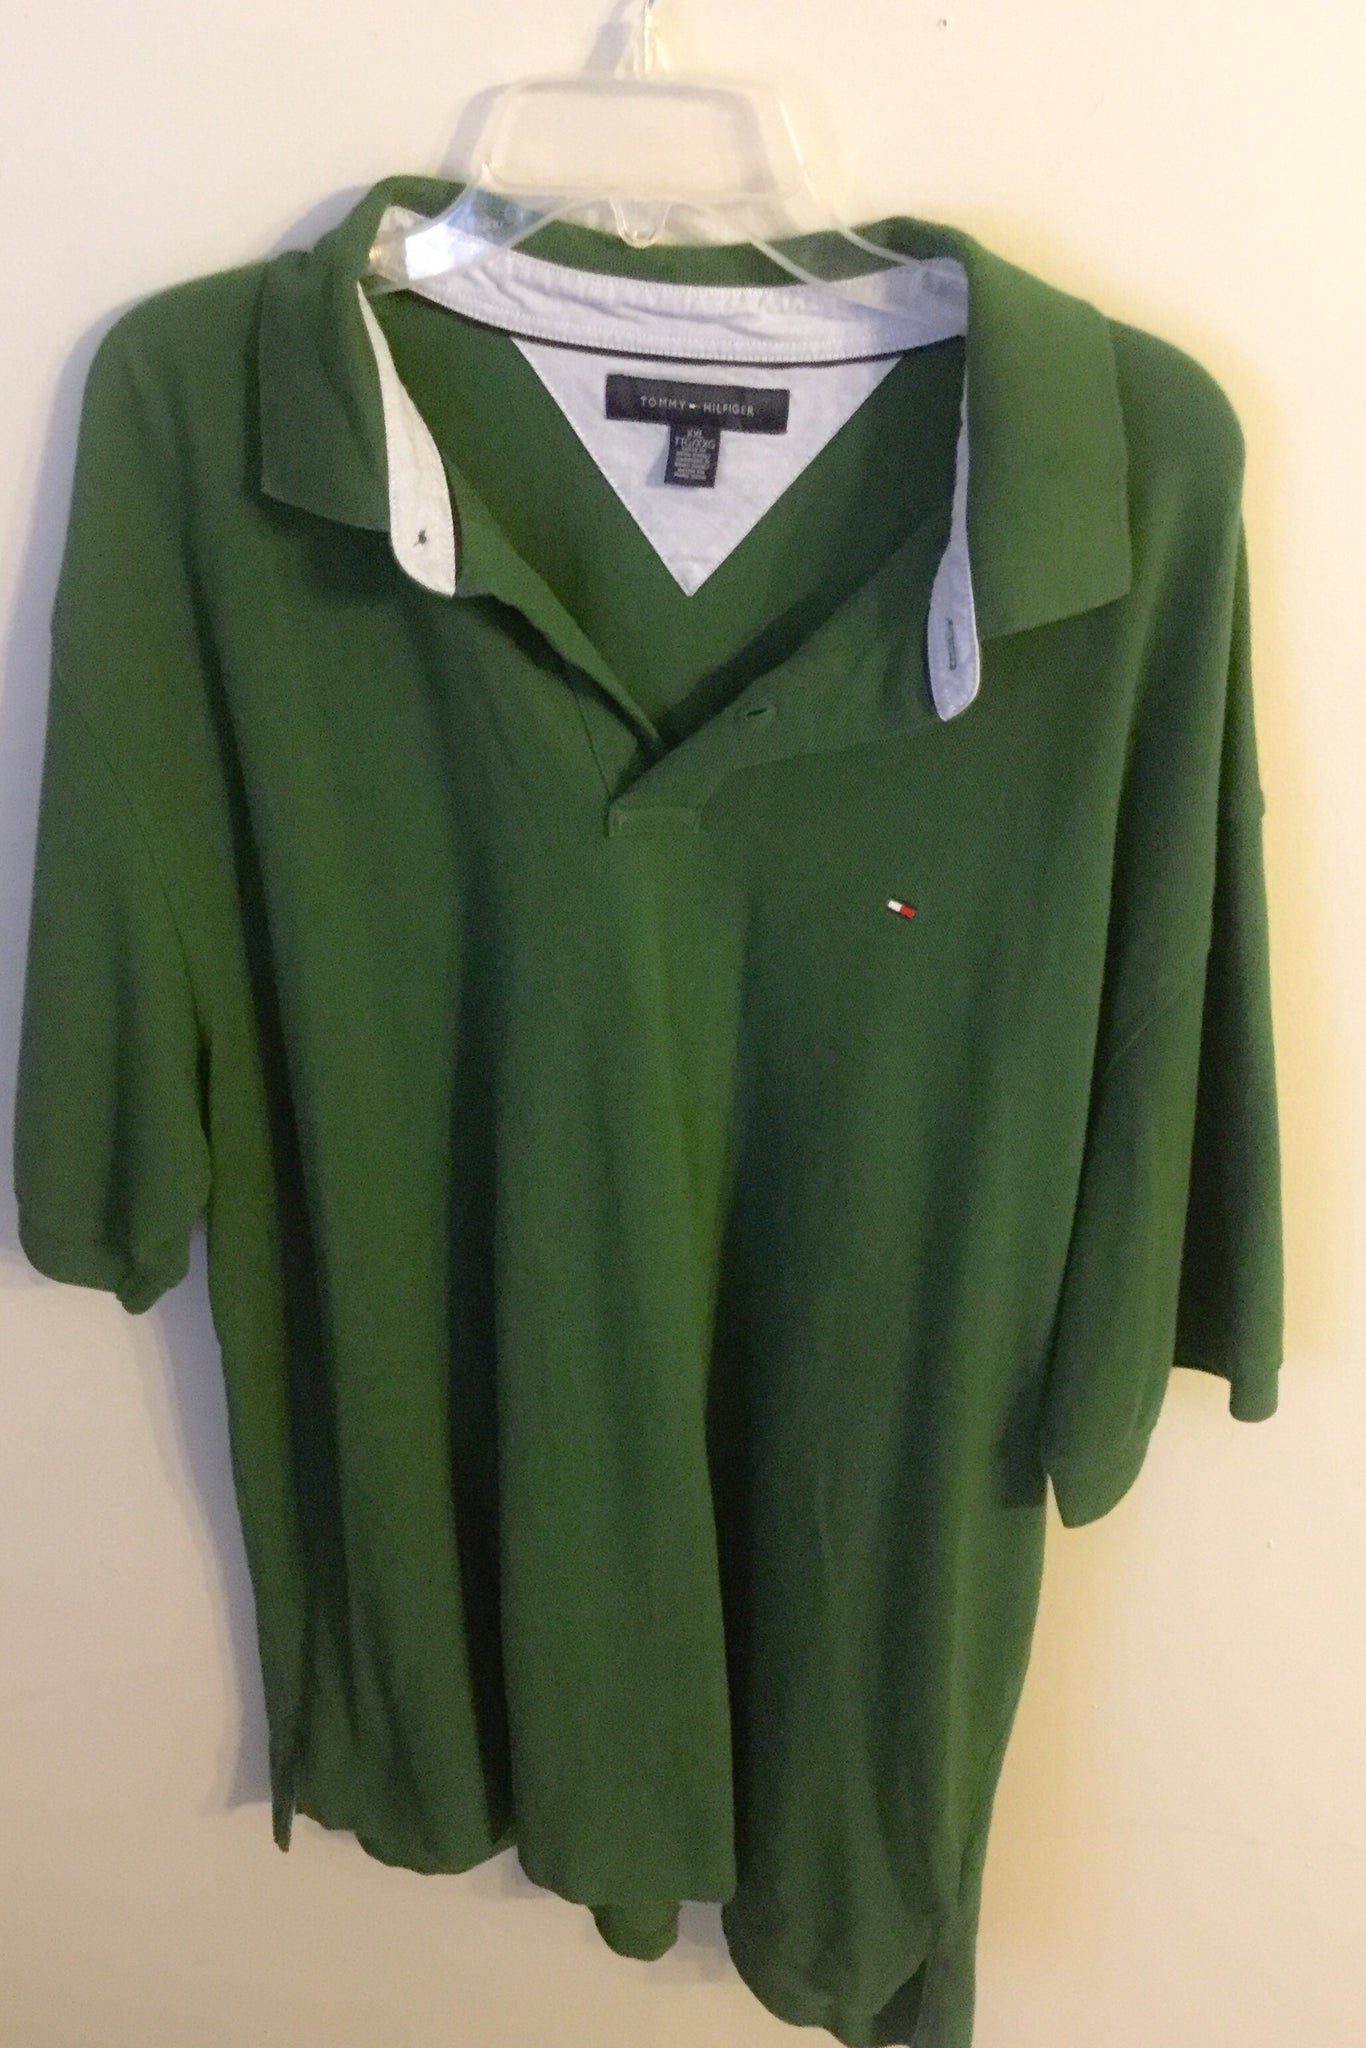 248eb66e Load image into Gallery viewer, Men's Green Polo Style TOMMY HILFIGER Shirt  ...